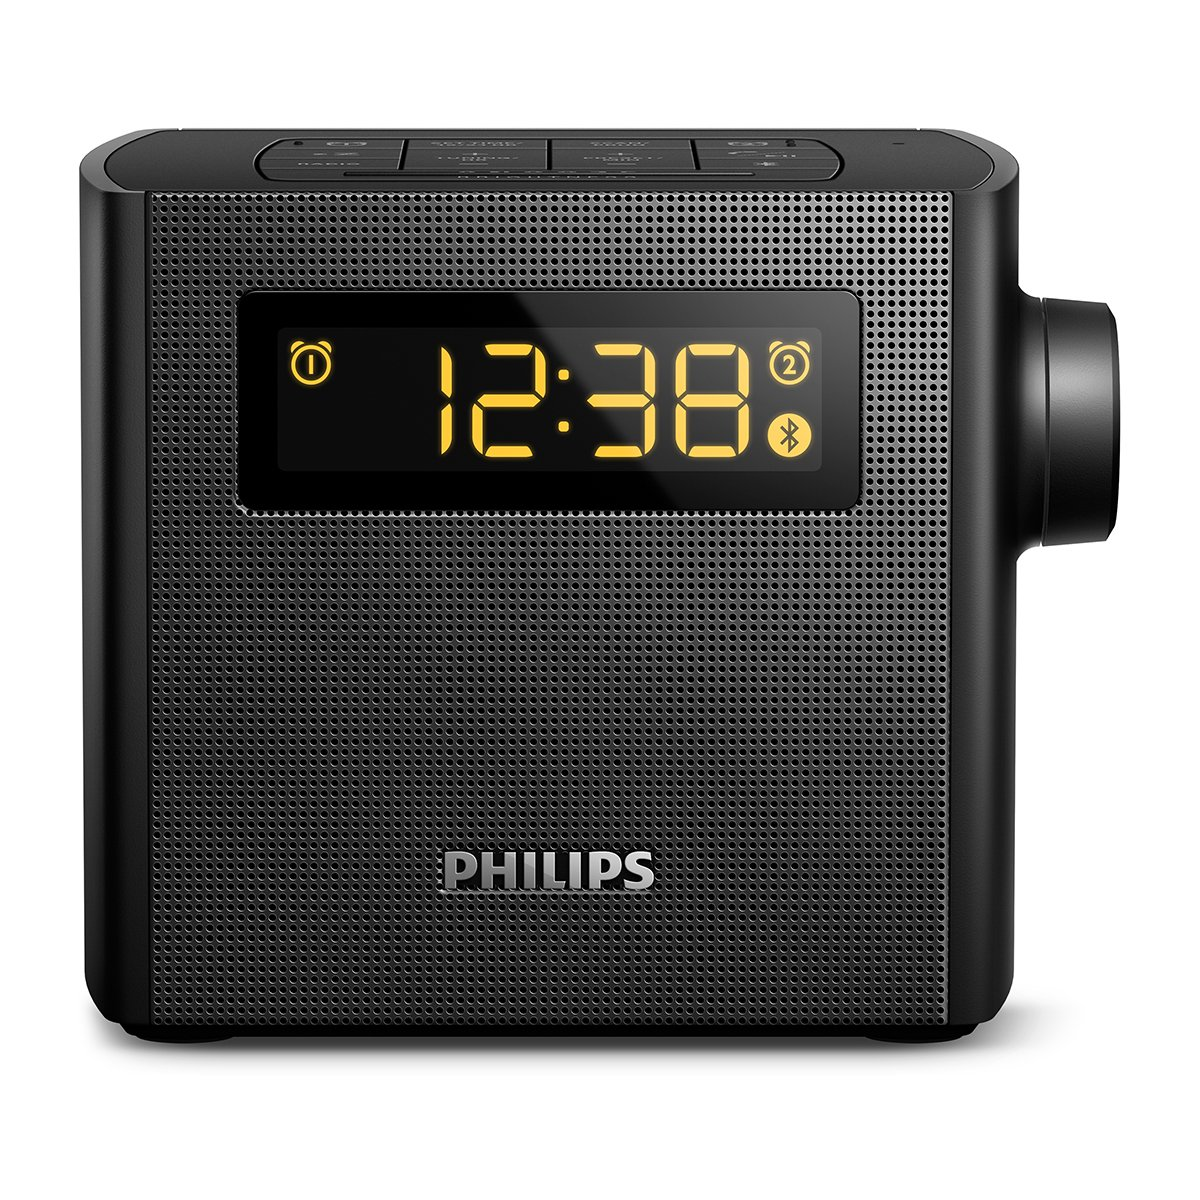 Philips AJT4400B 37 Bluetooth Speaker